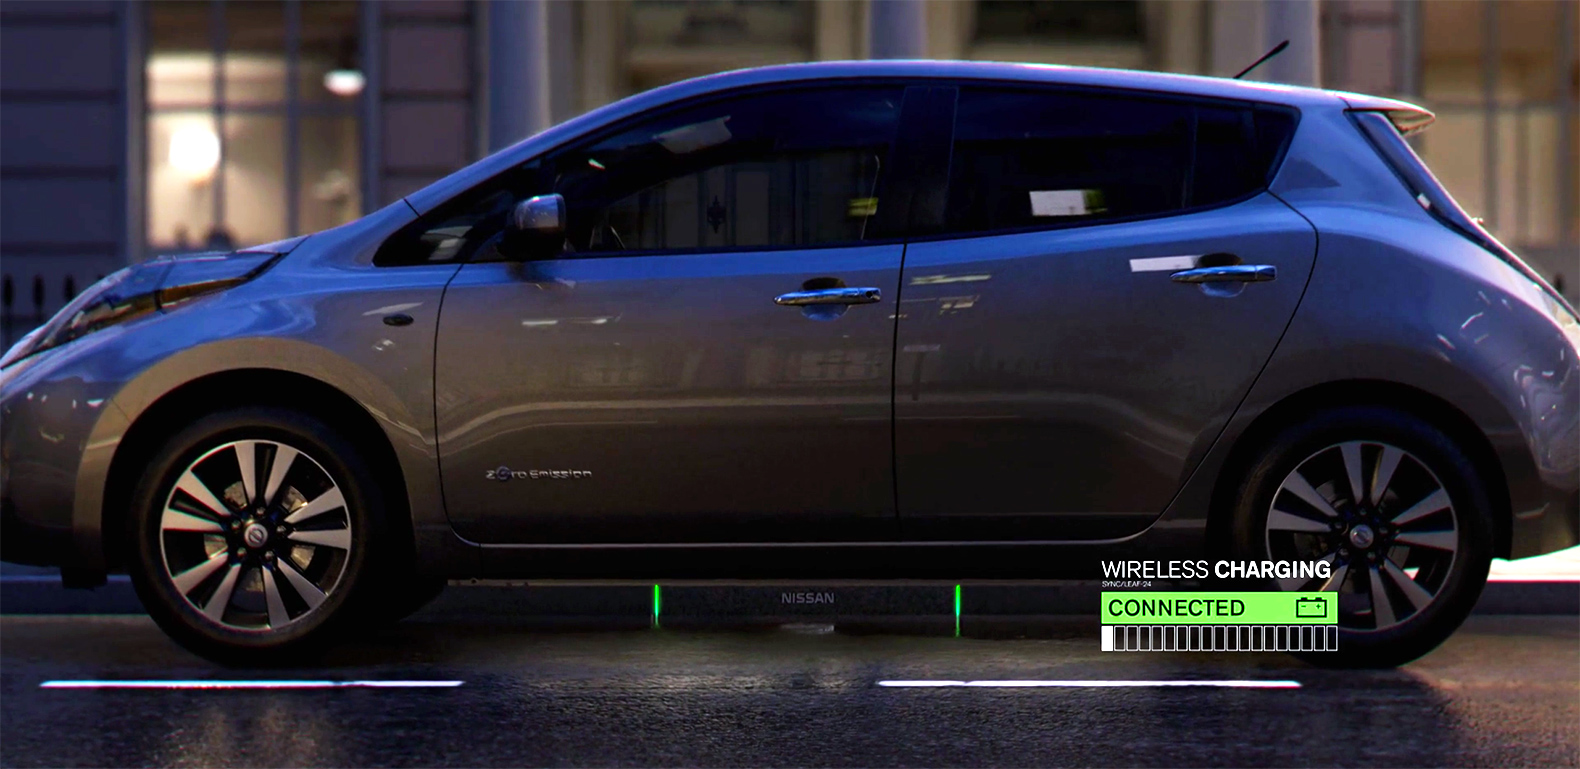 The Fuel Station of the Future will wirelessly charge your self-driving car with solar energy